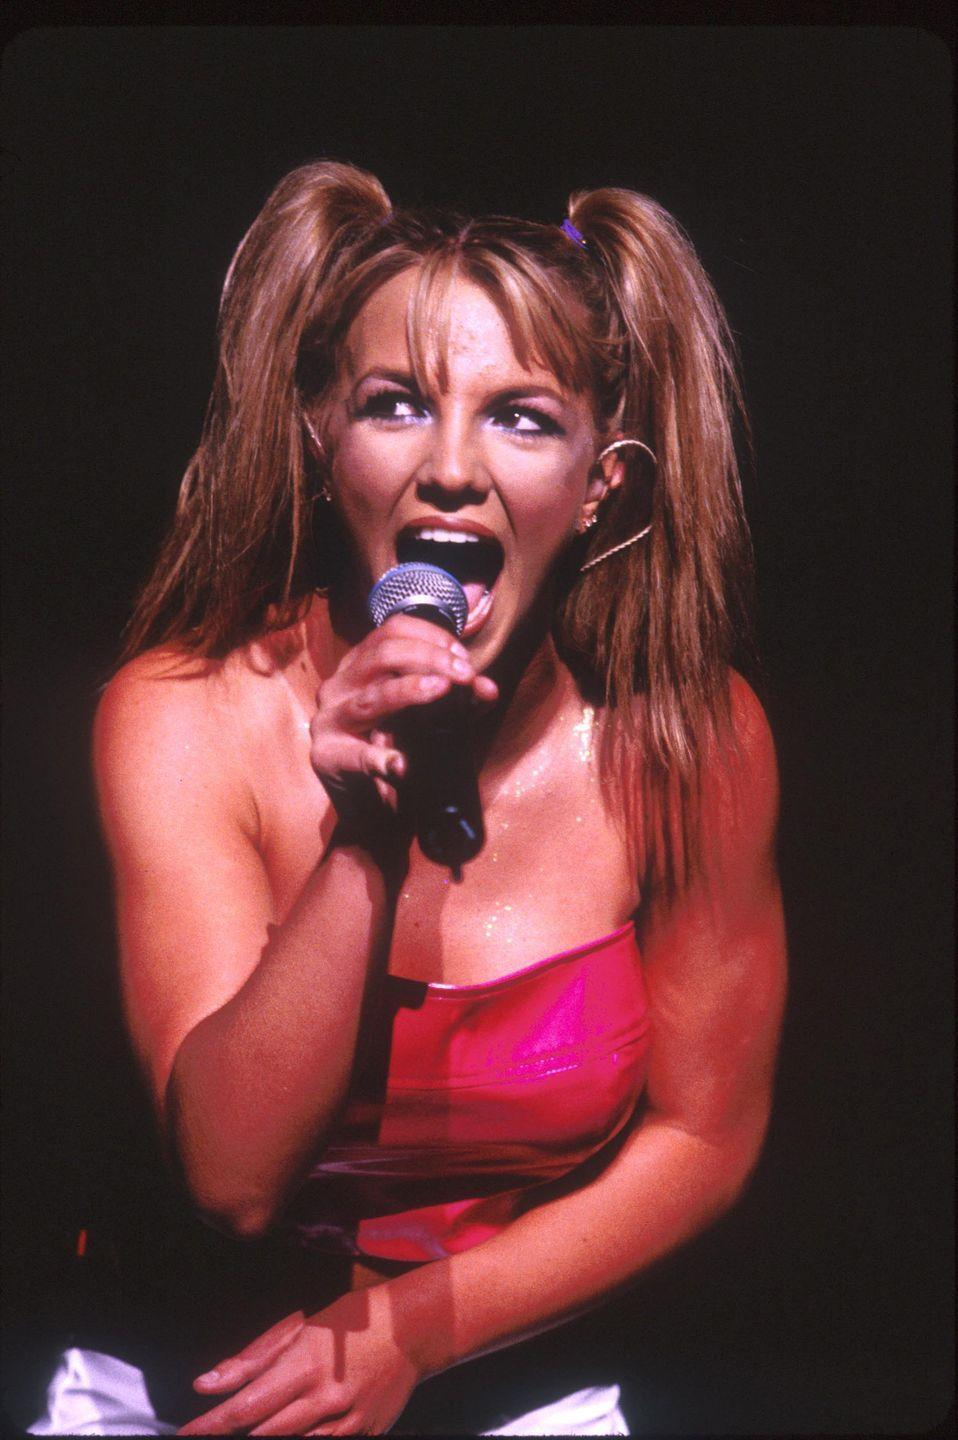 <p>Only one month later, thanks to what I can only assume are a few pounds of extensions, Britney was seen in concert with honey brown hair and high pigtails, naturally.</p>